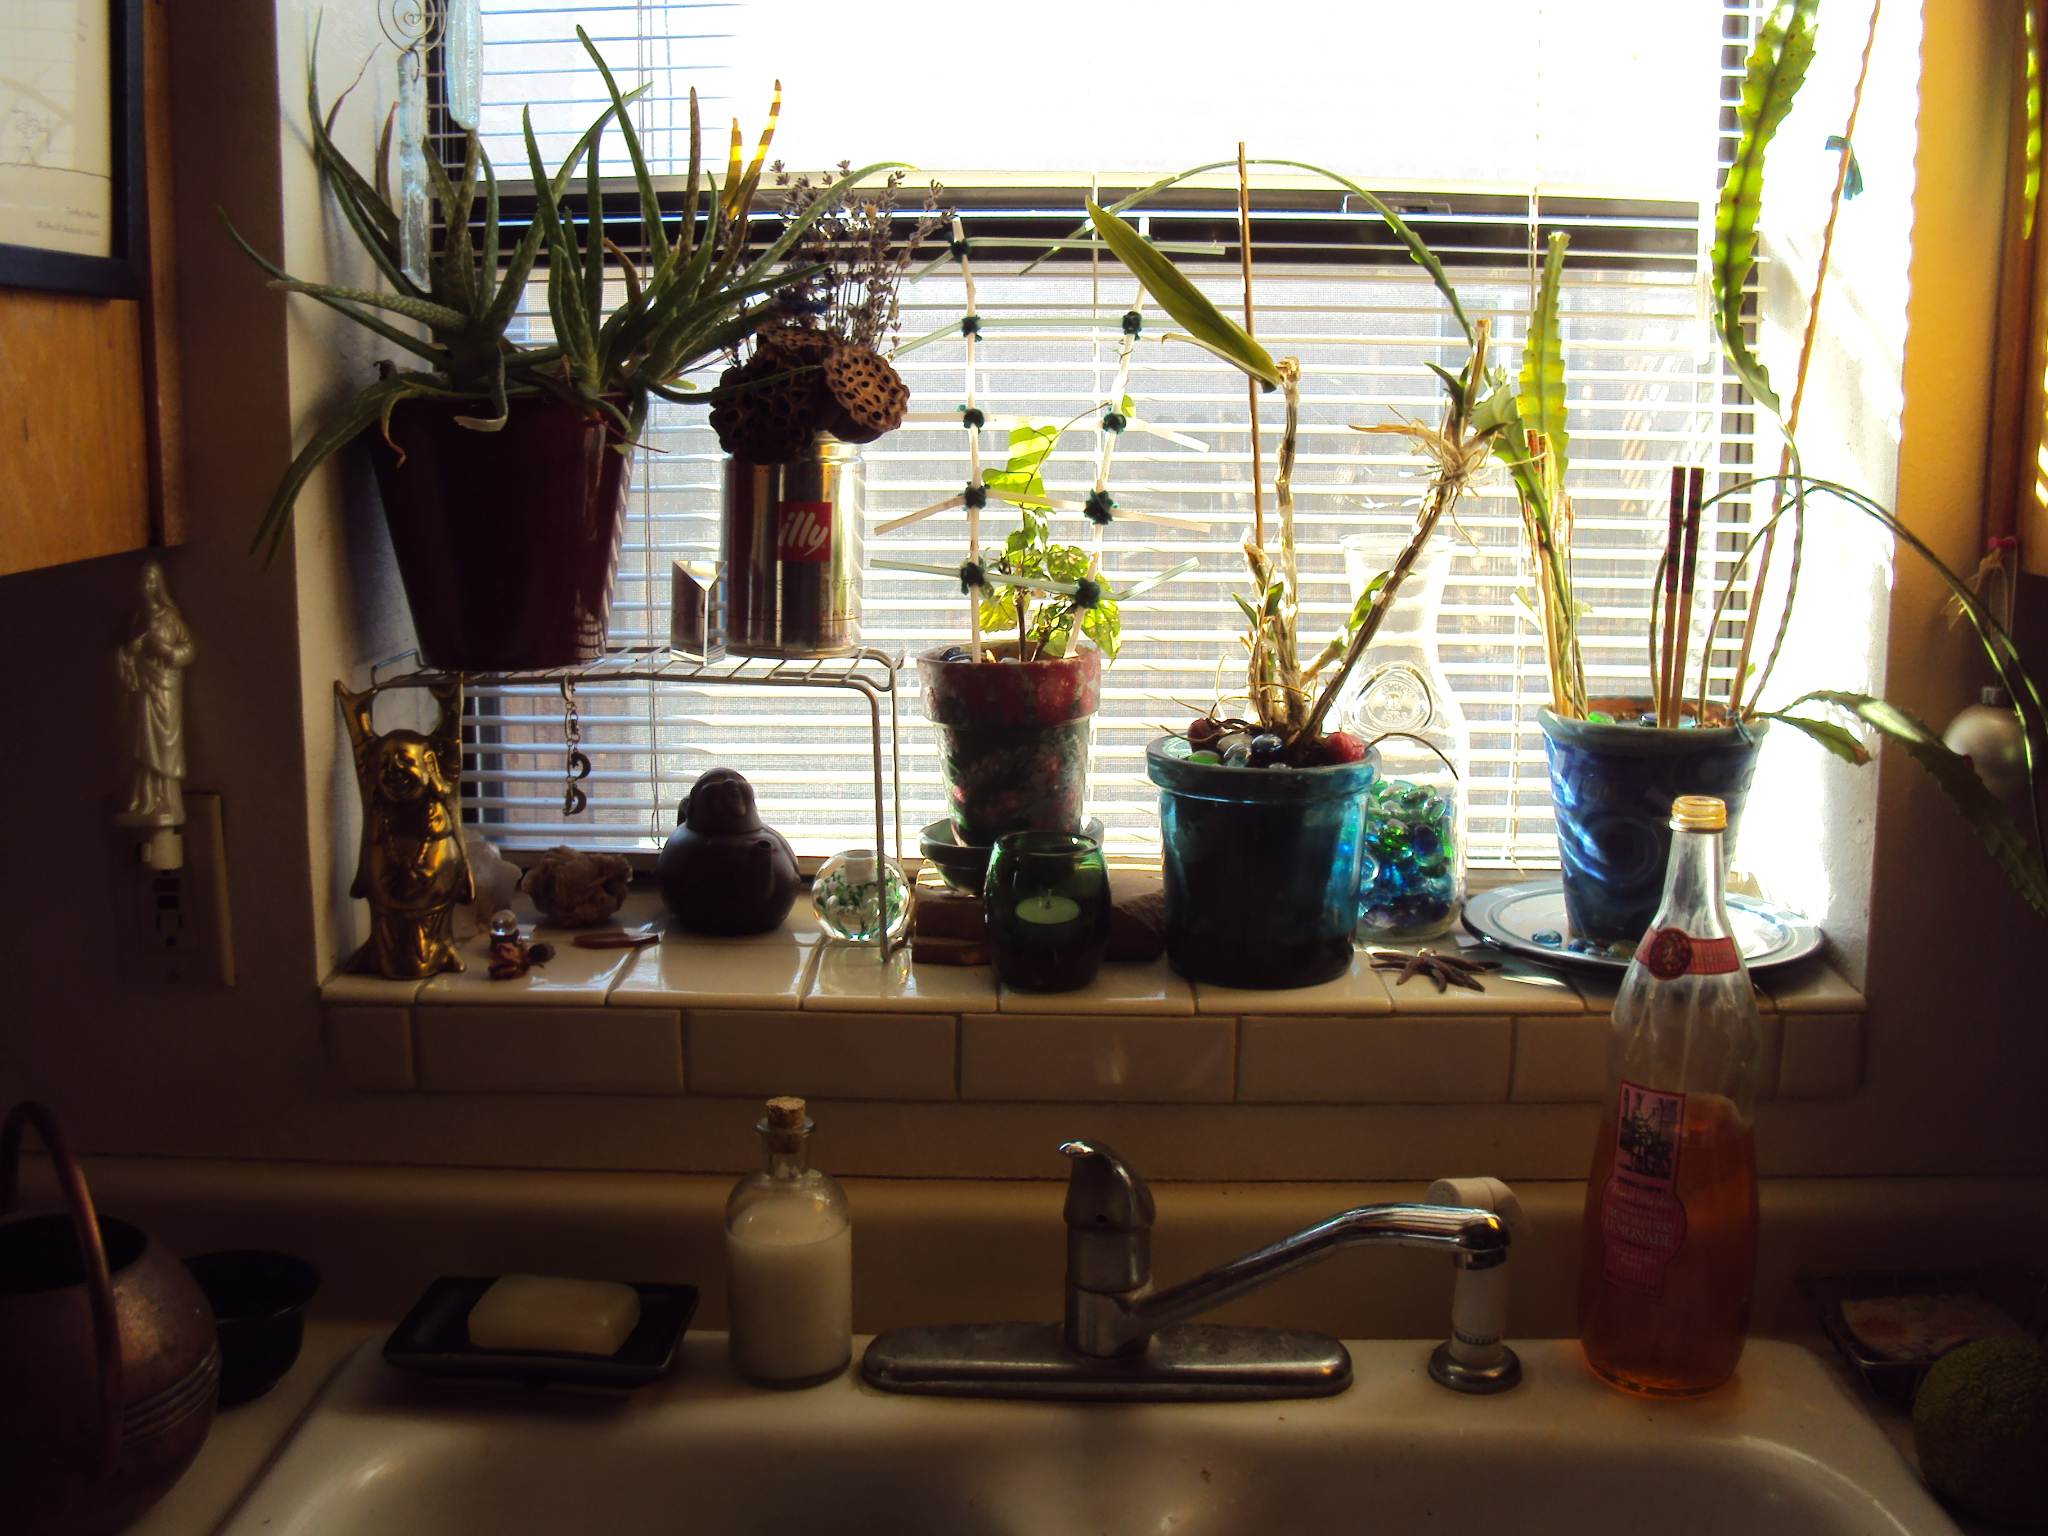 Kitchen window for plants - I